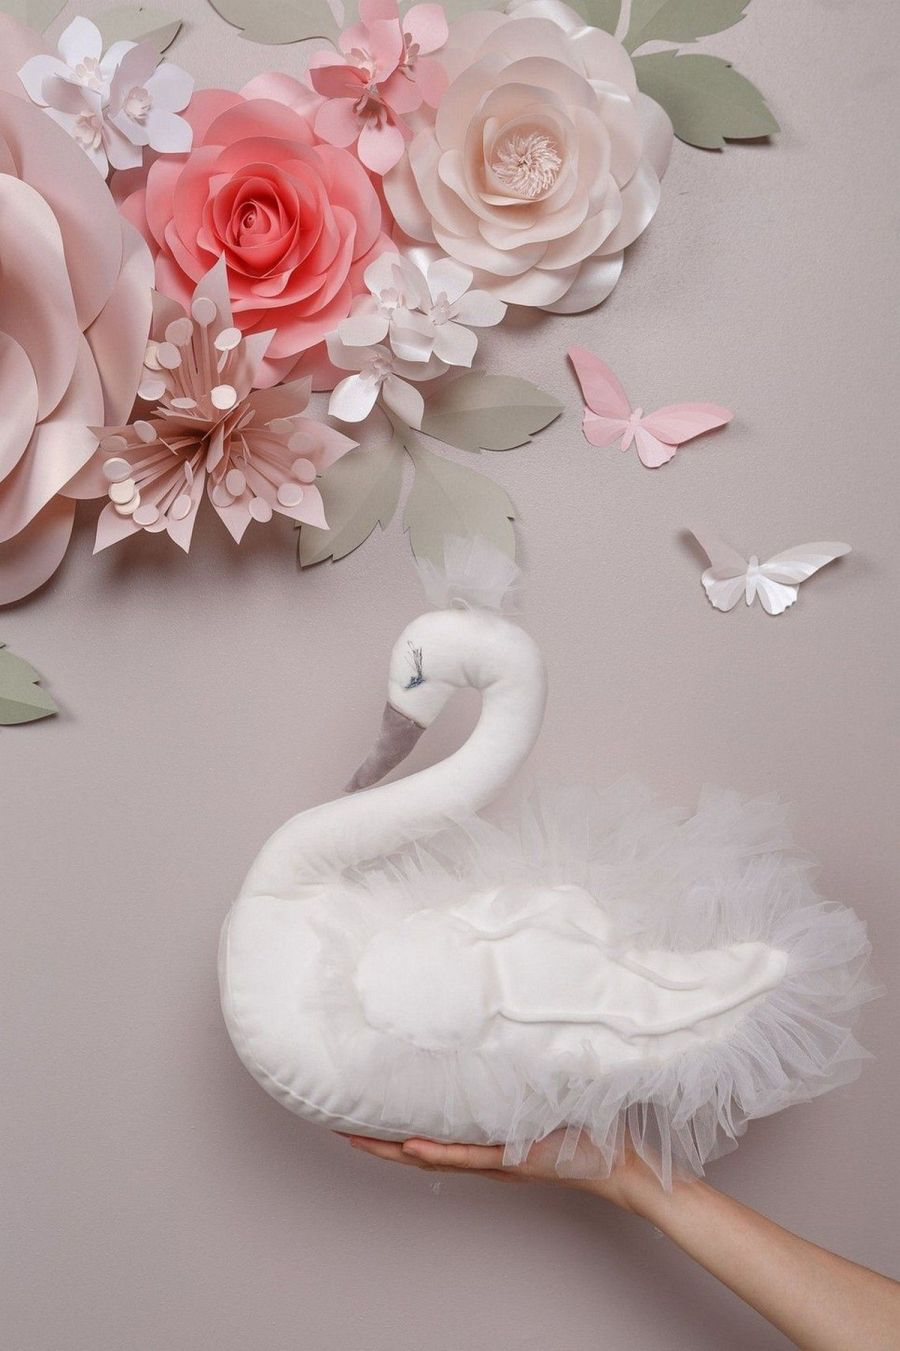 A little girl's nursery will be the space where she grows, learns, and plays, so make it as magical as her personality. Today we're sharing nursery ideas fit for a swan princess.